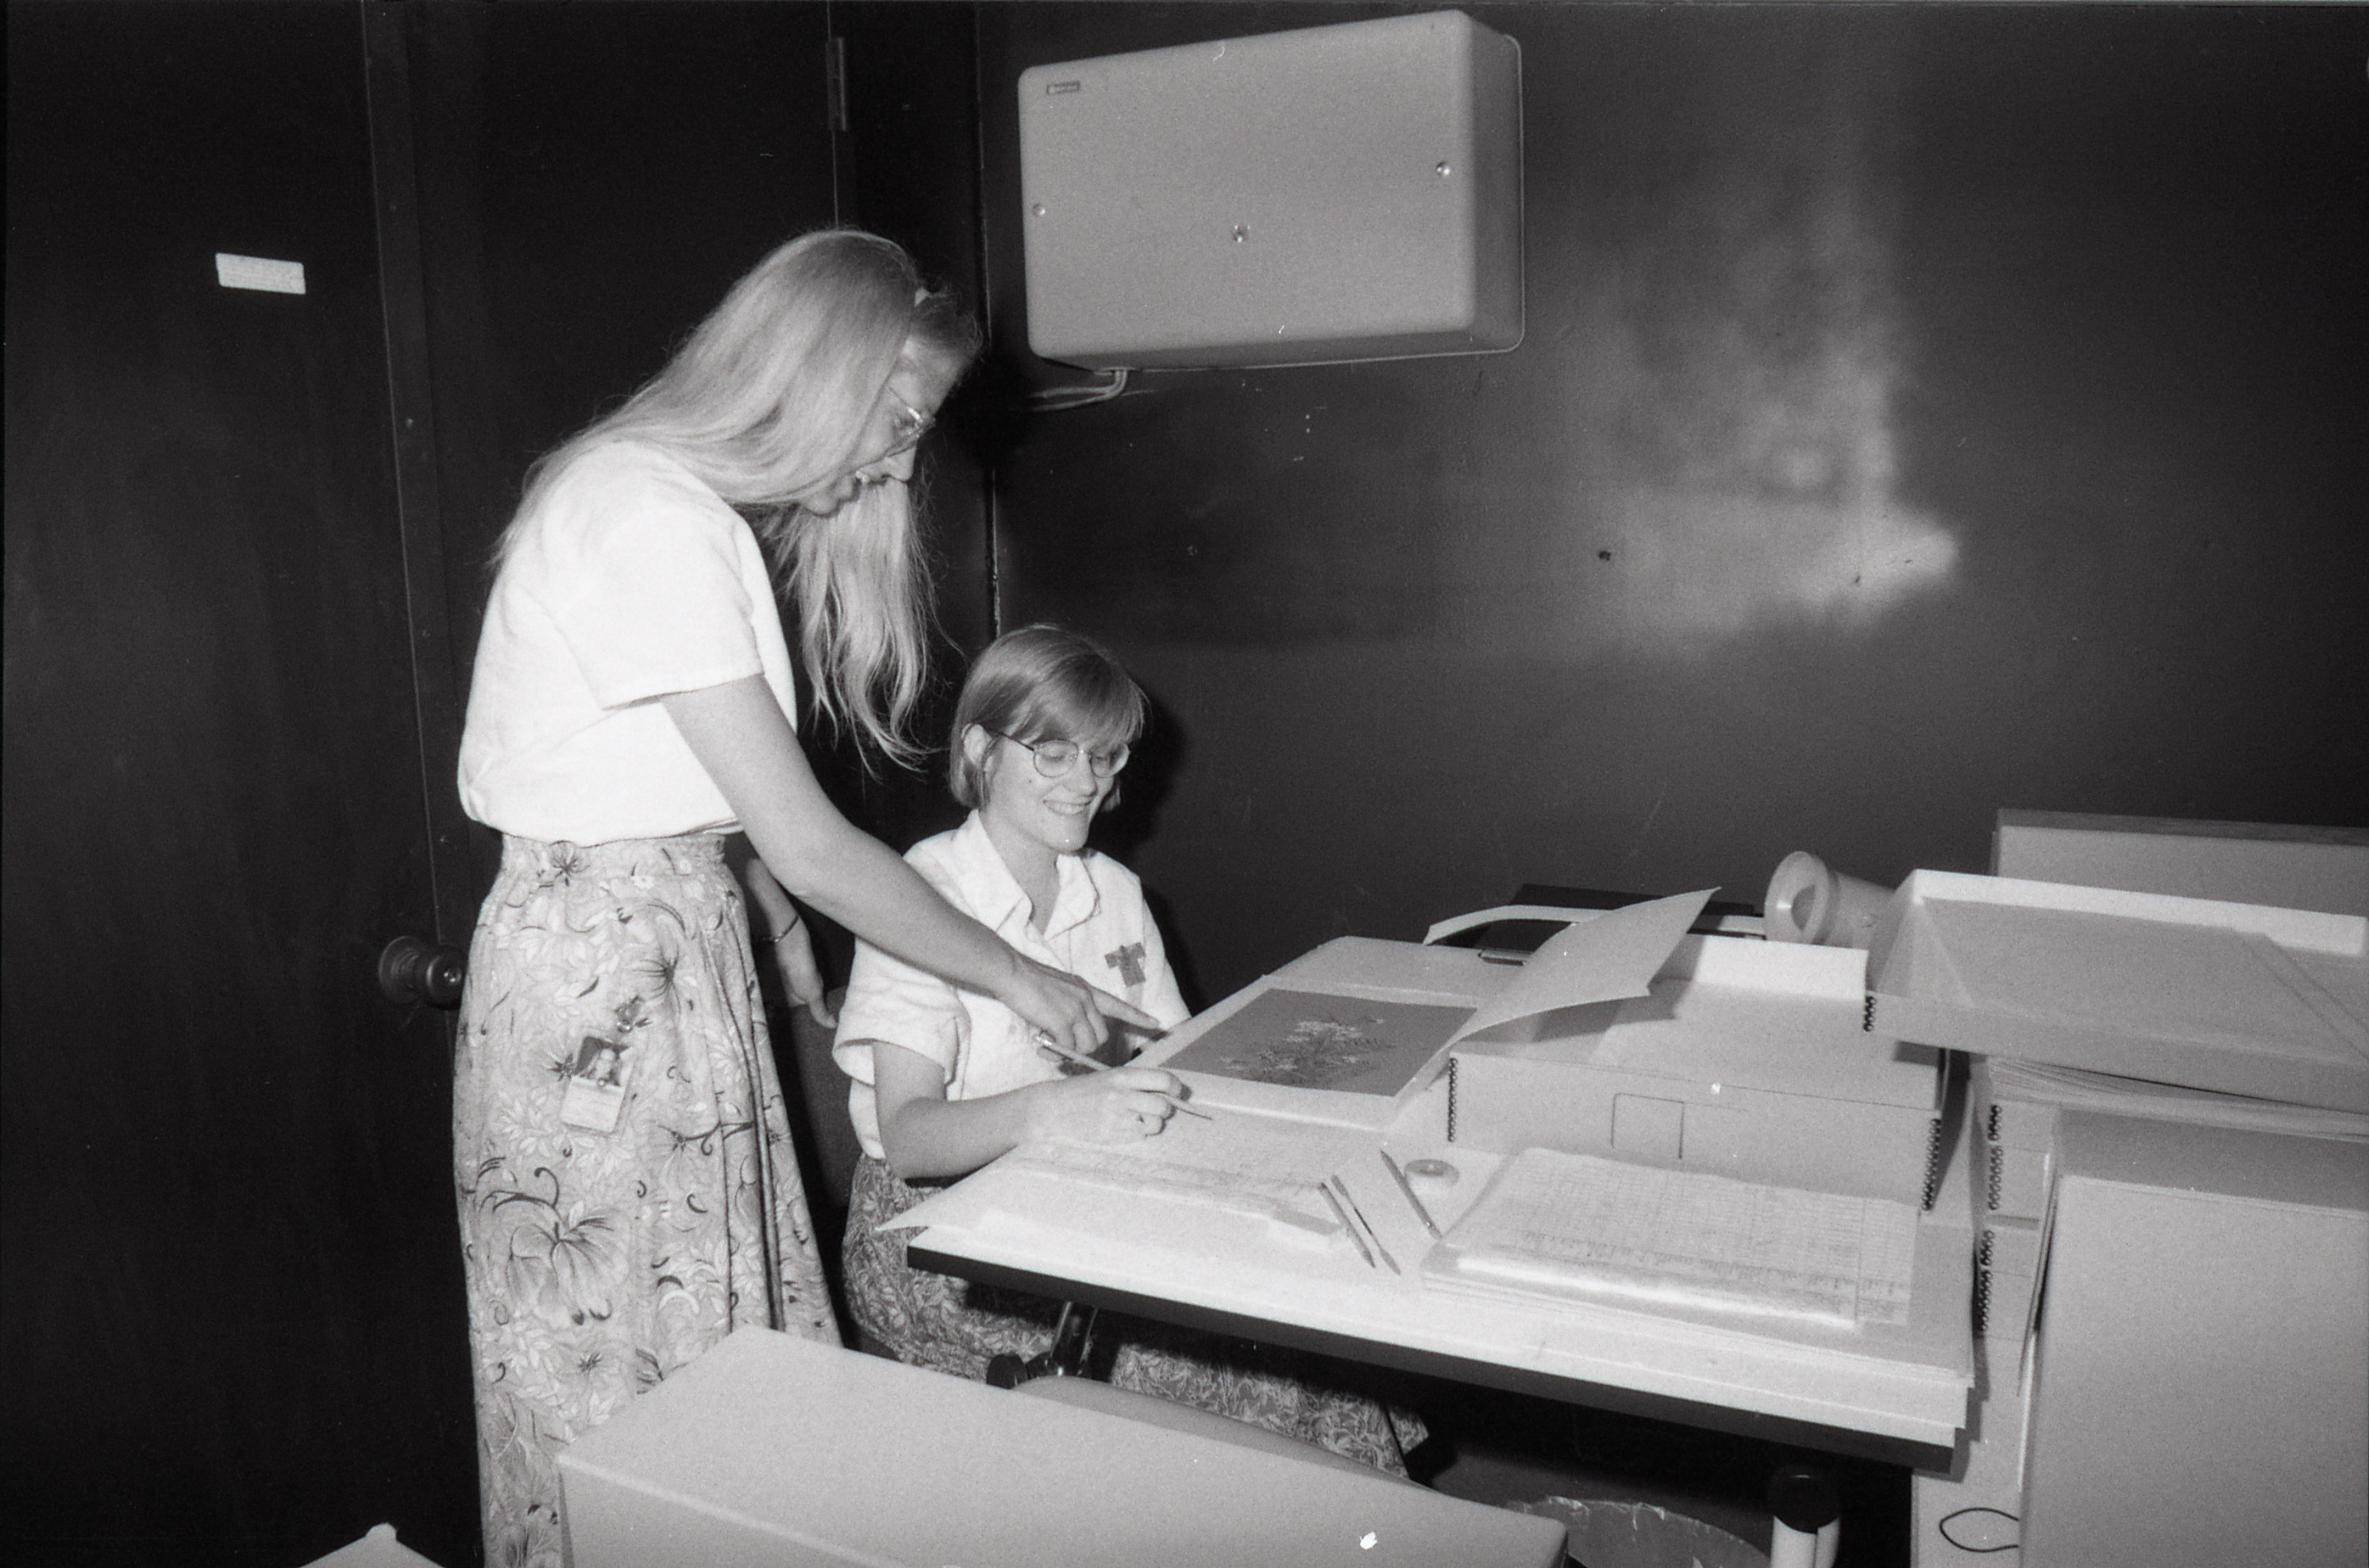 Black and white image of two persons examining archival material.